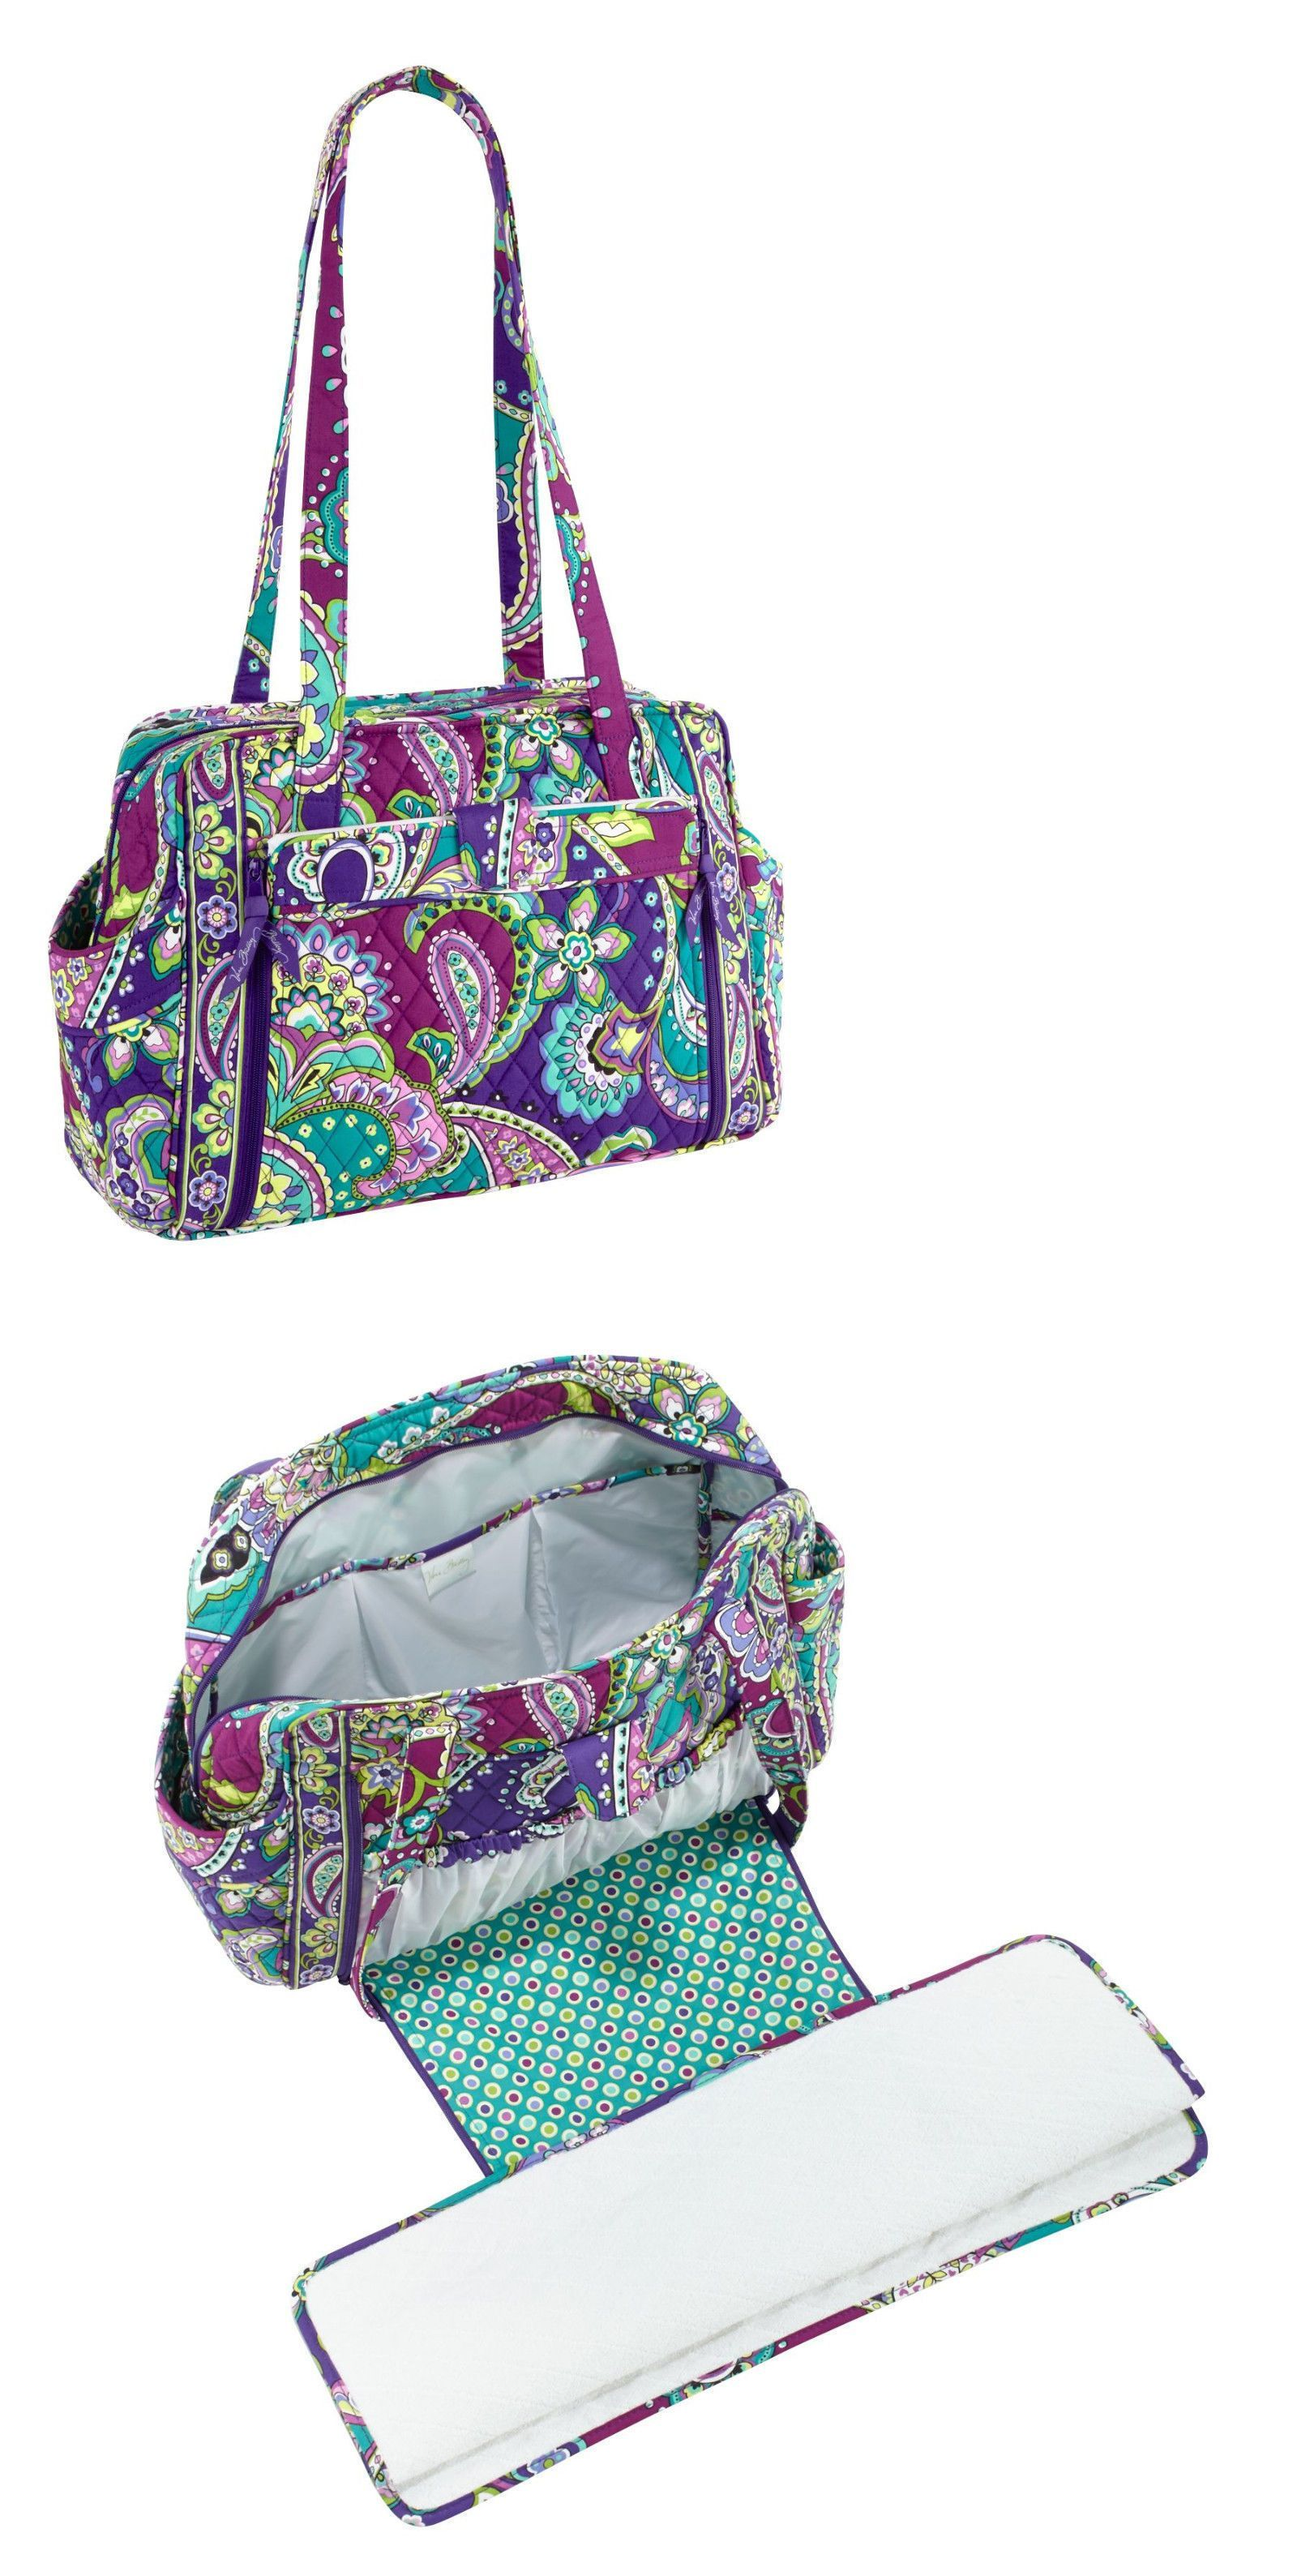 Diaper Bags 169295  New Vera Bradley Make A Change Baby Diaper Bag In Heather  Print 5f67f8290d1c9